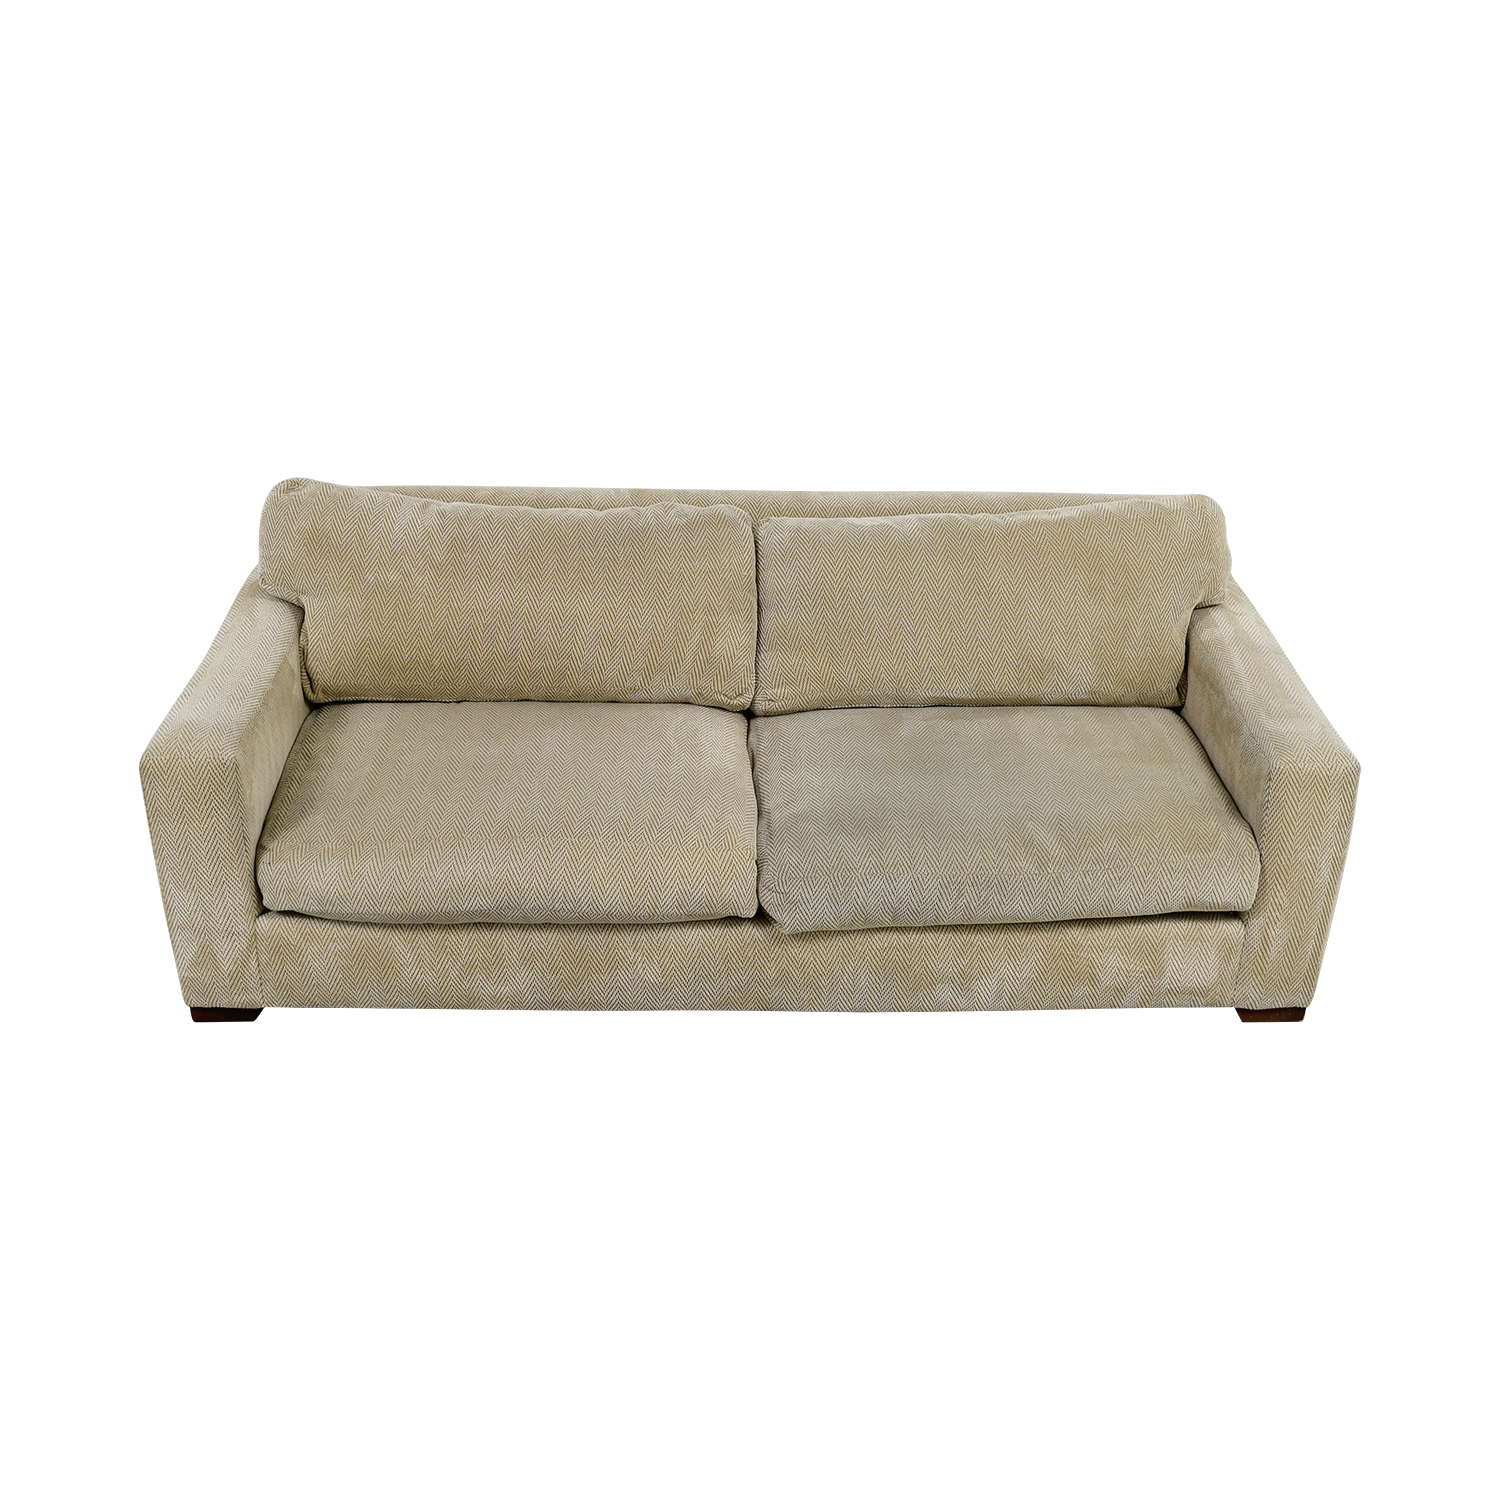 Beige Herringbone Two-Cushion Sofa used